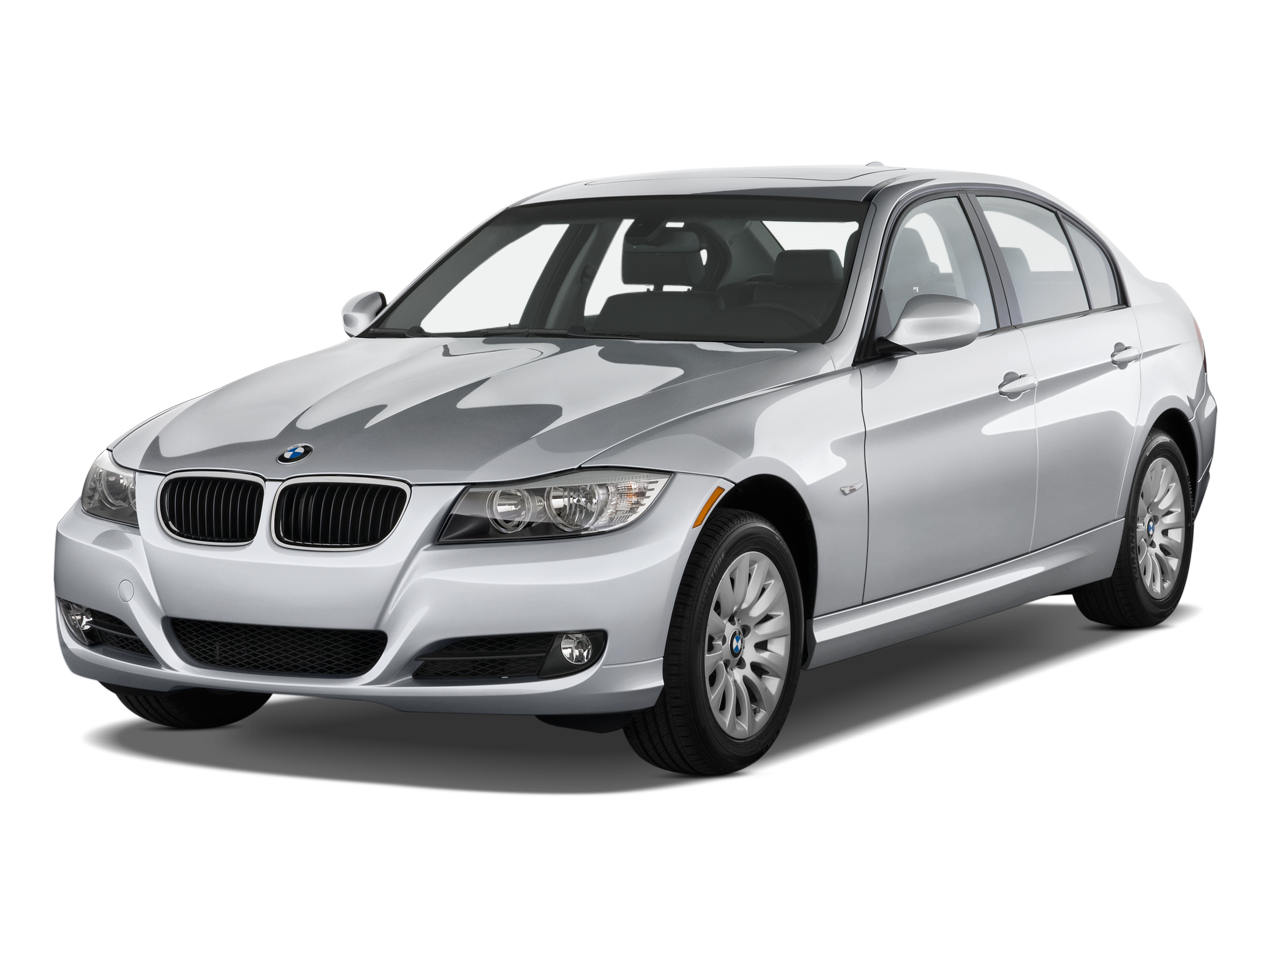 free png hd of cars car png picture png image 1280 - 2010 Bmw 335d Sedan